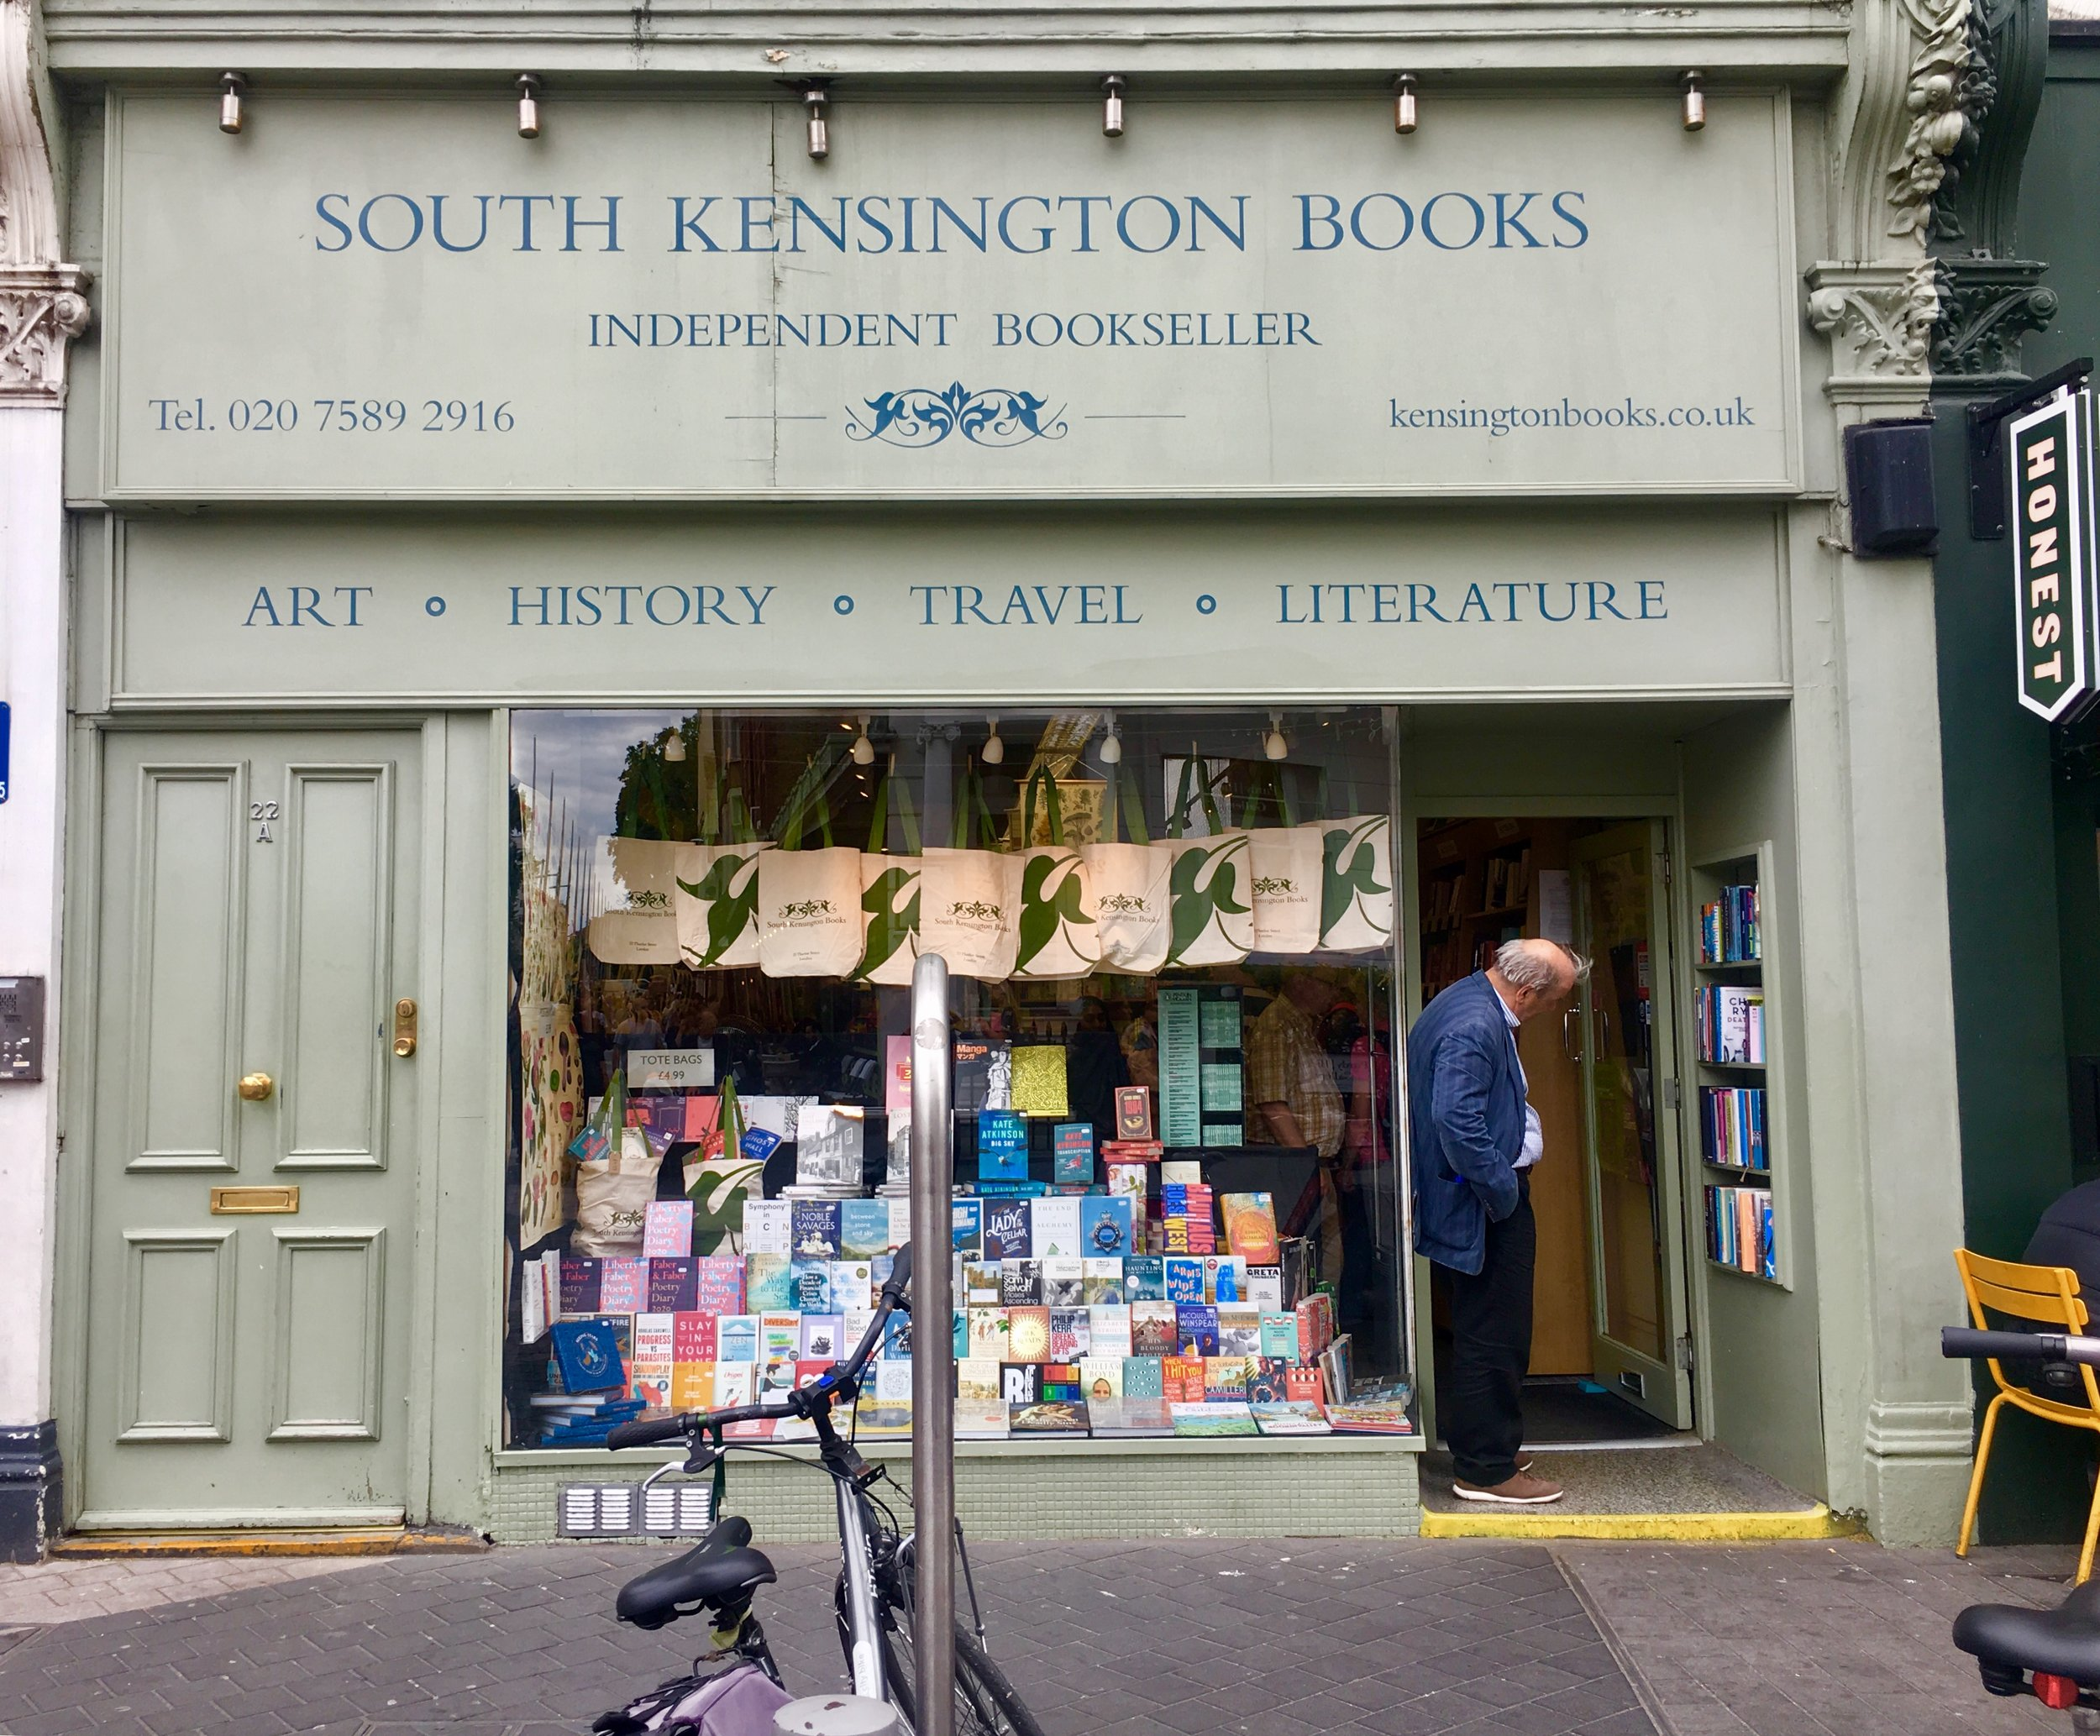 South Kensington Books  is the quintessential independent neighborhood book store. Established in the 1940's, South Kensington Books specializes in Visual Arts, Photography and Architecture and History besides fiction and nonfiction. 22 Thurloe St, Kensington, London, UK.